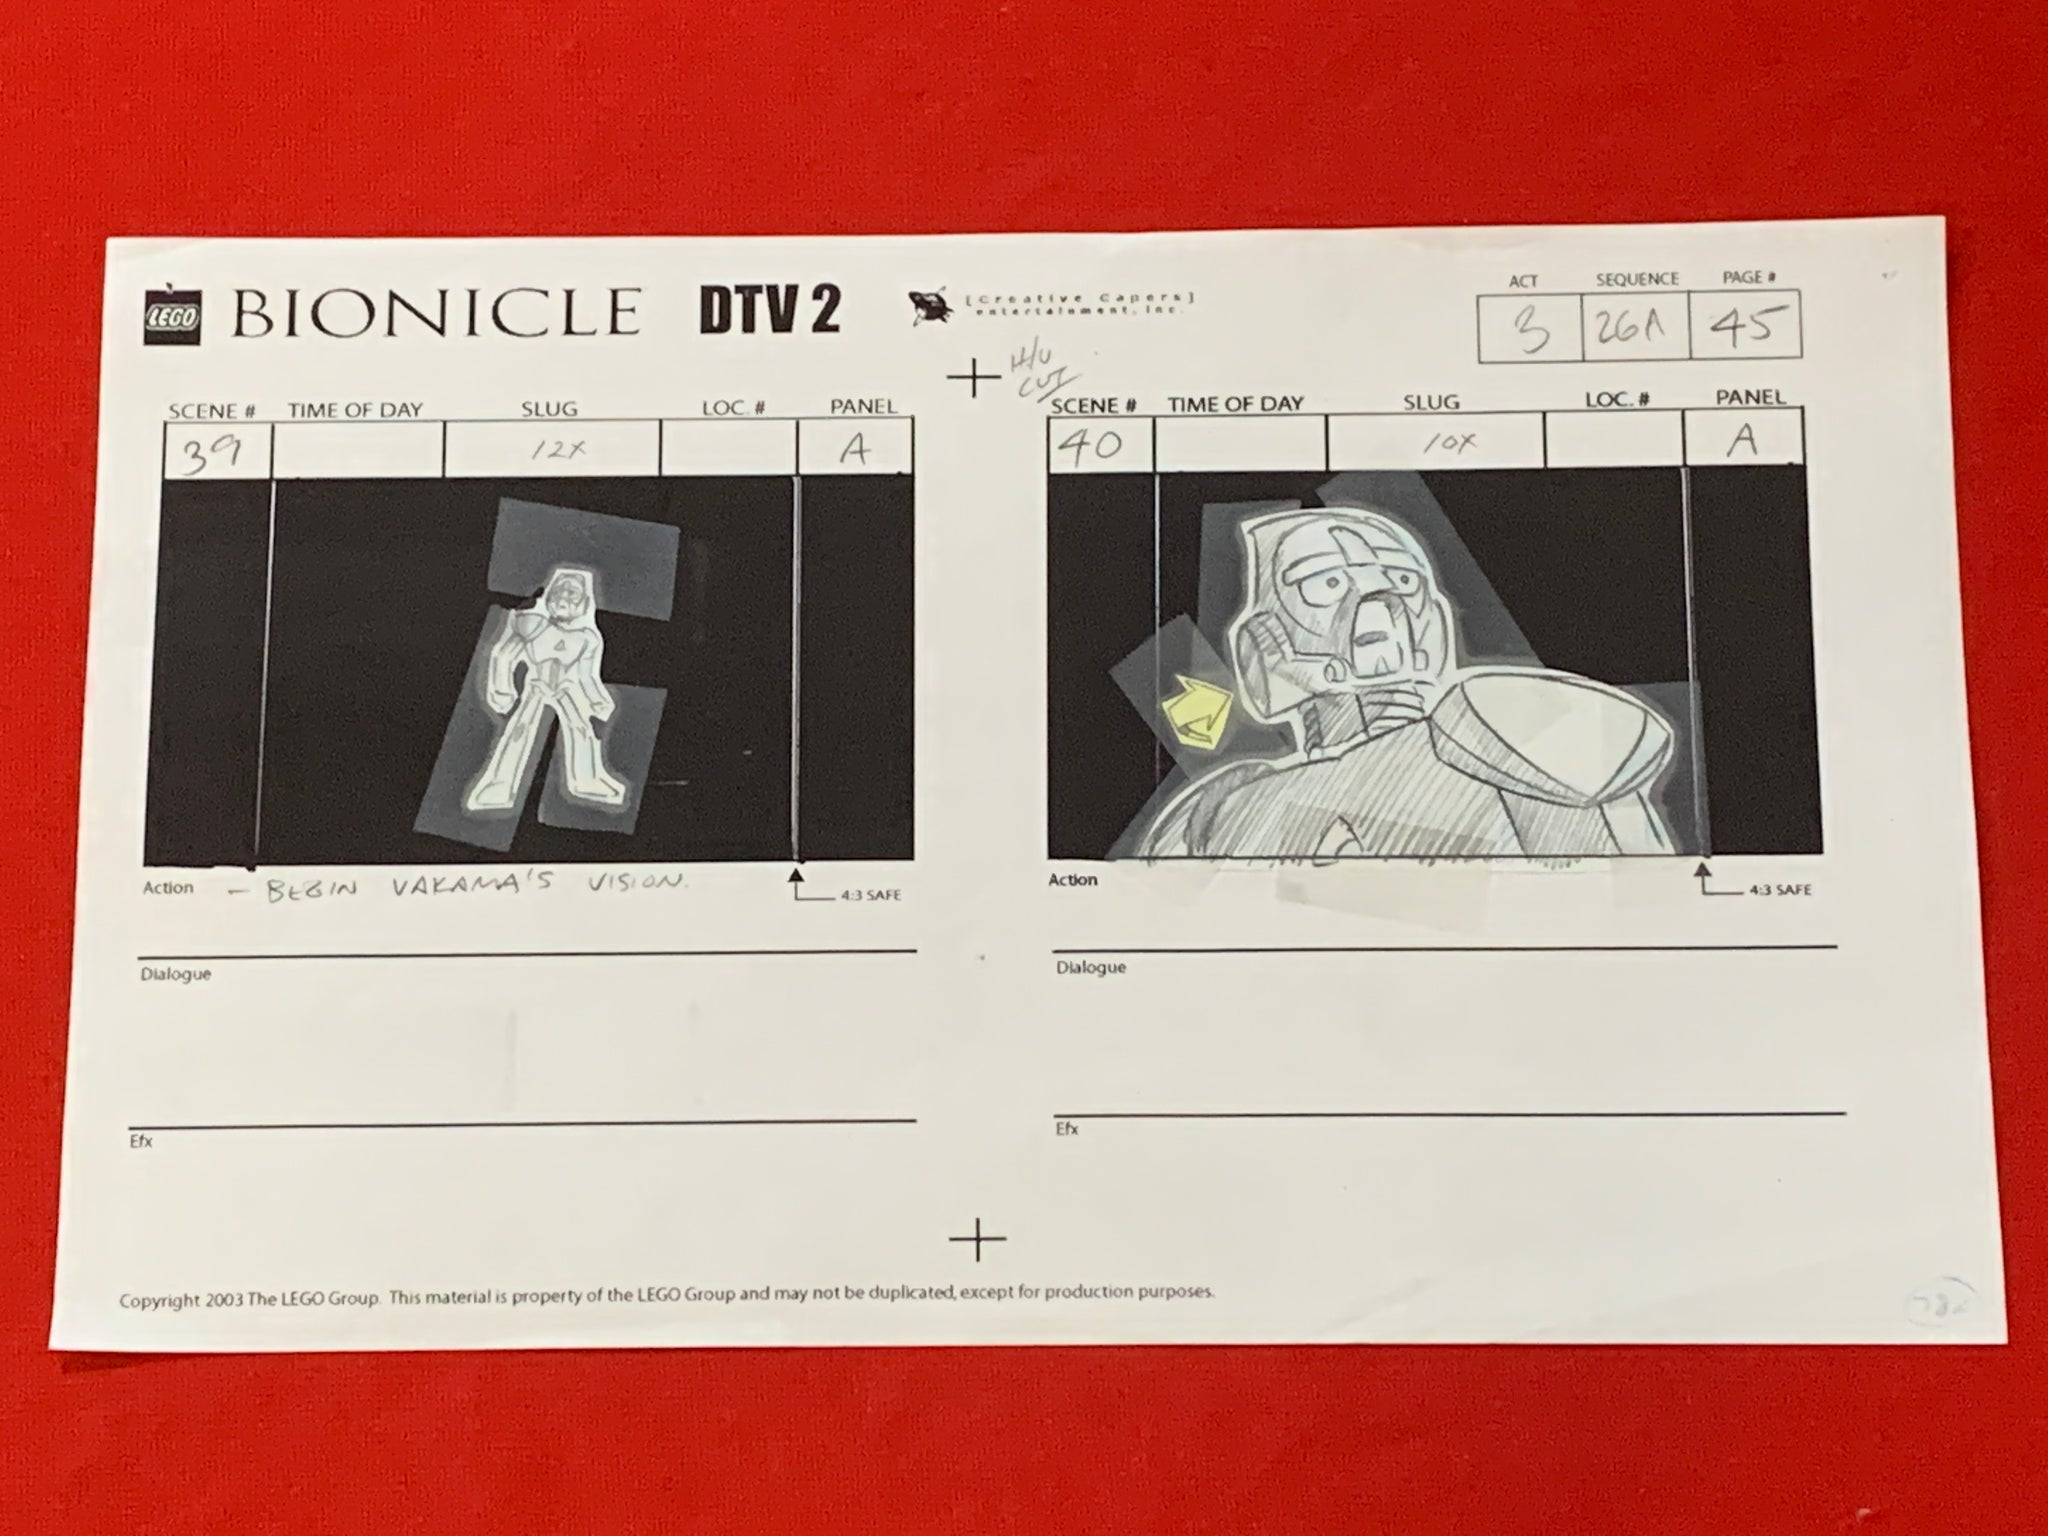 Lego Bionicle storyboard 1 EX0826 - Animation Legends